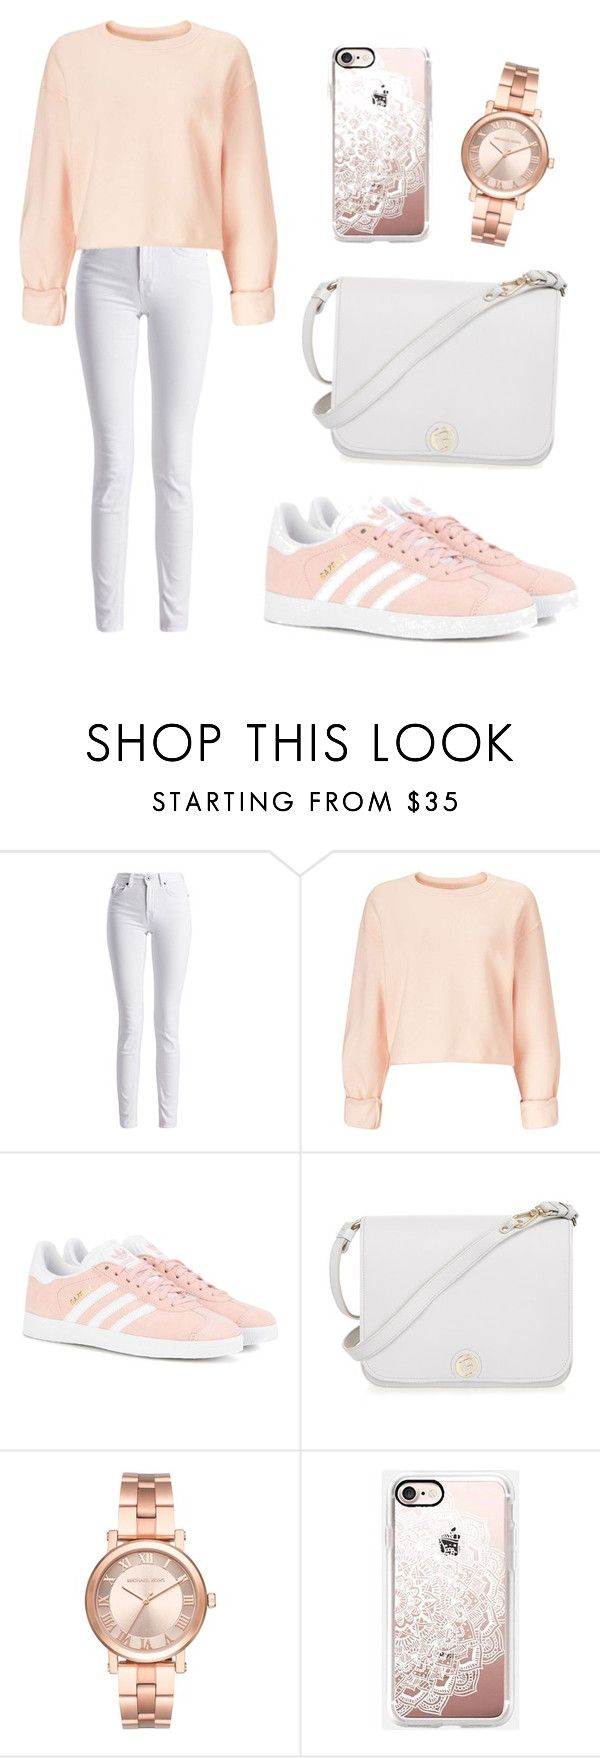 """""""Untitled #6"""" by angelaabrahamyan ❤ liked on Polyvore featuring Barbour International, Miss Selfridge, adidas Originals, Furla, Michael Kors and Casetify"""